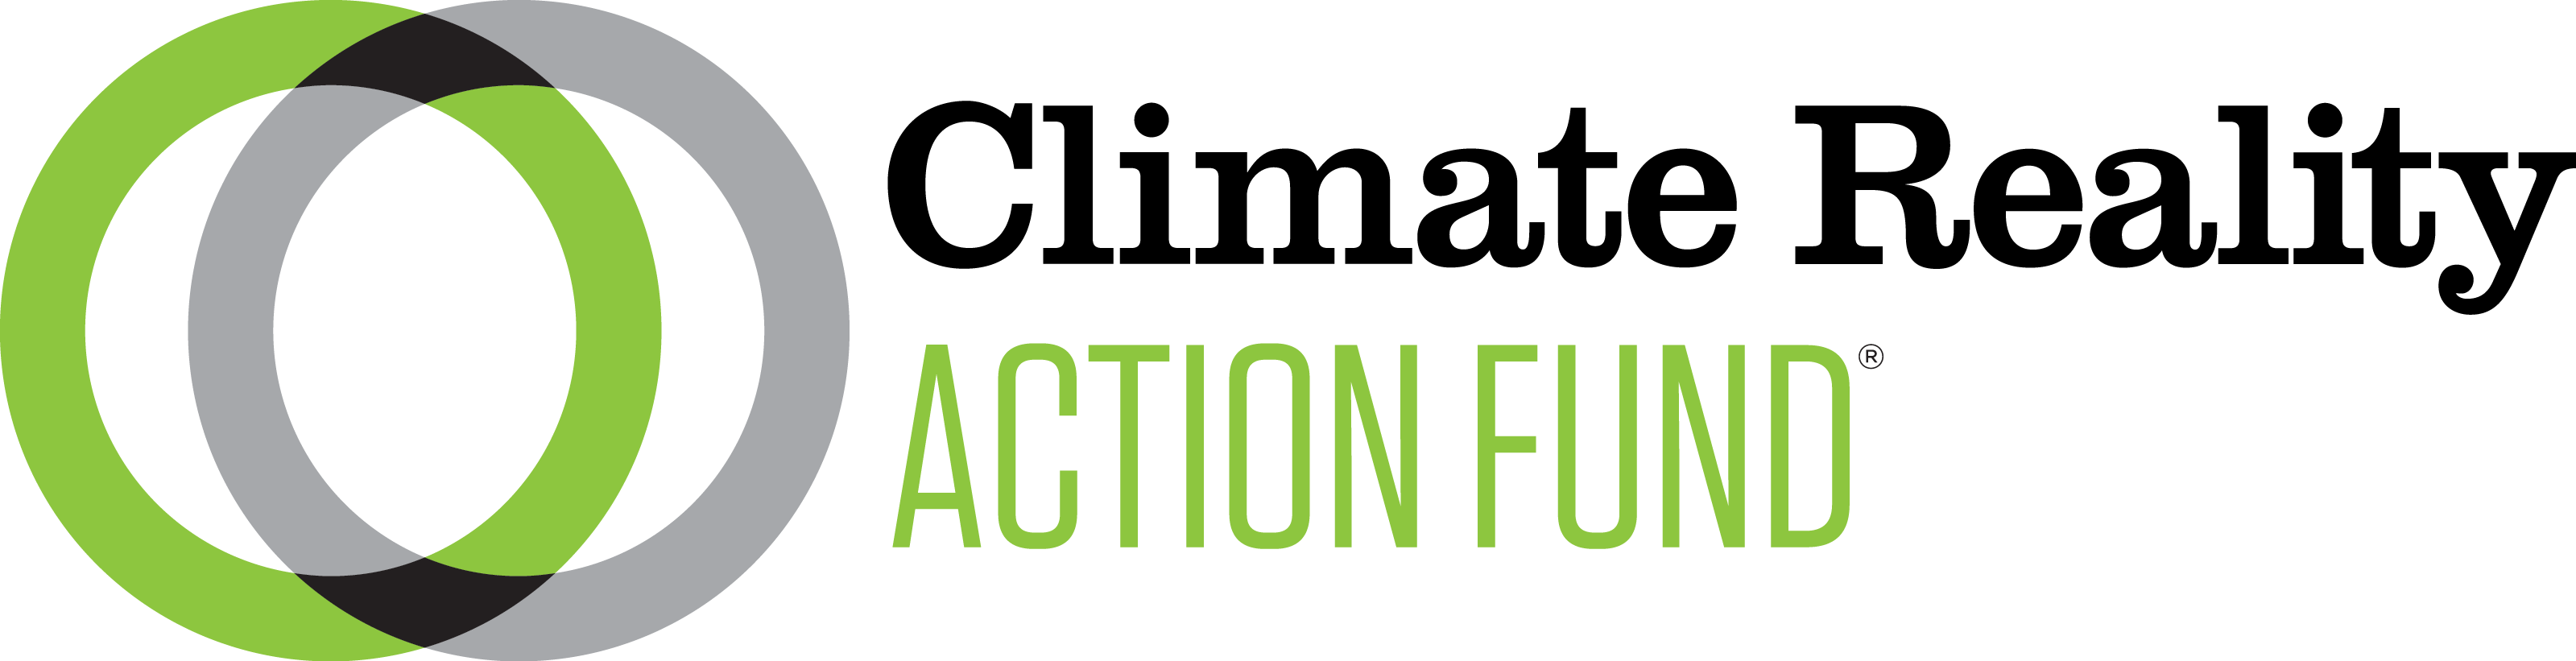 Action Fund logo